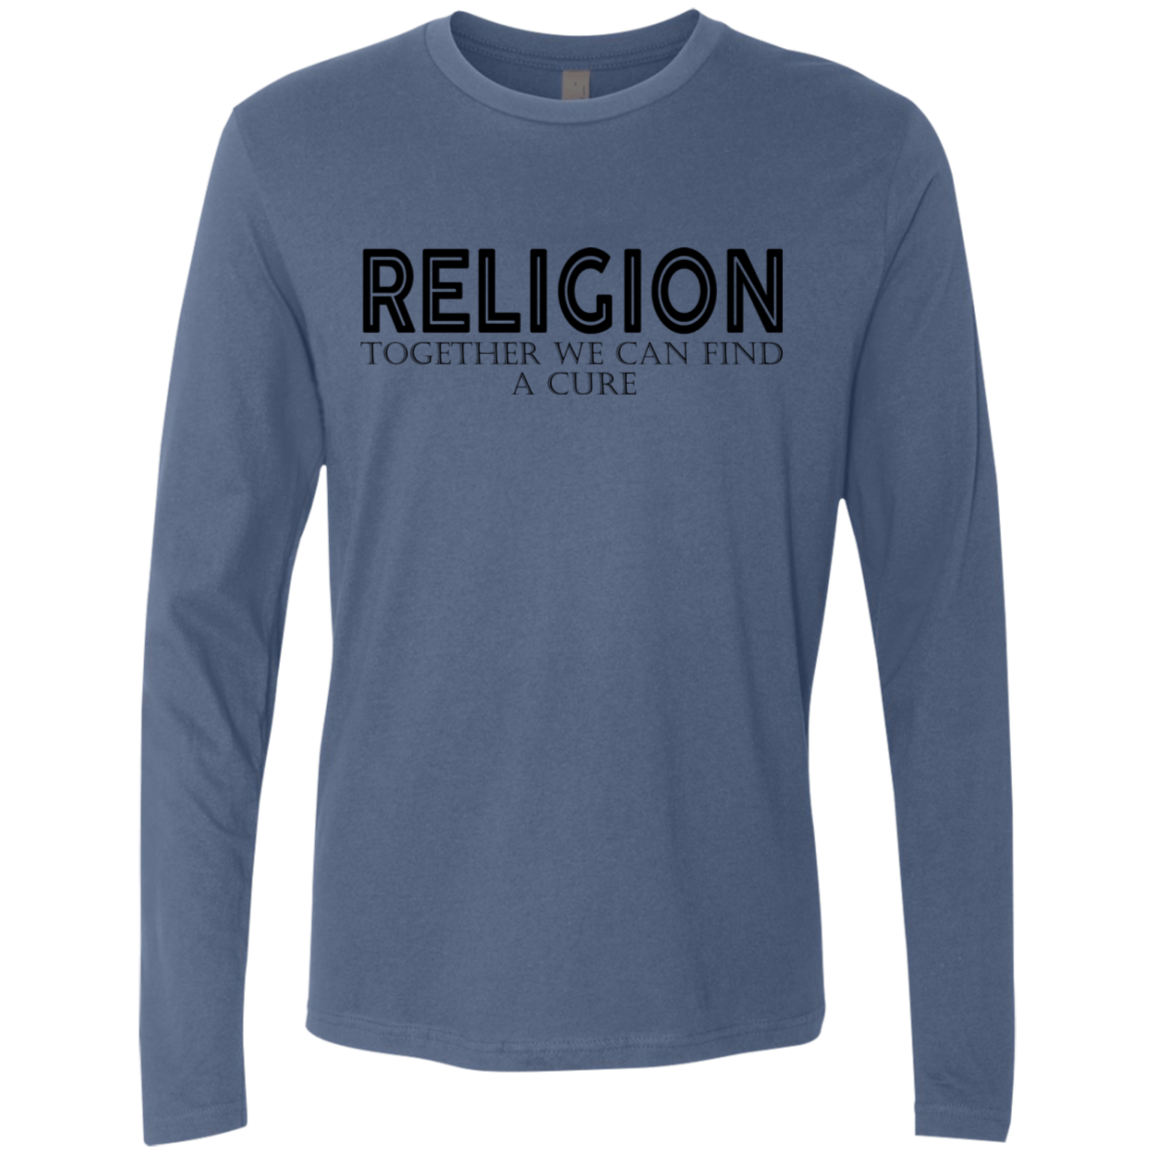 REligion Together We Can Find A Cure Men's Long Sleeve Tee